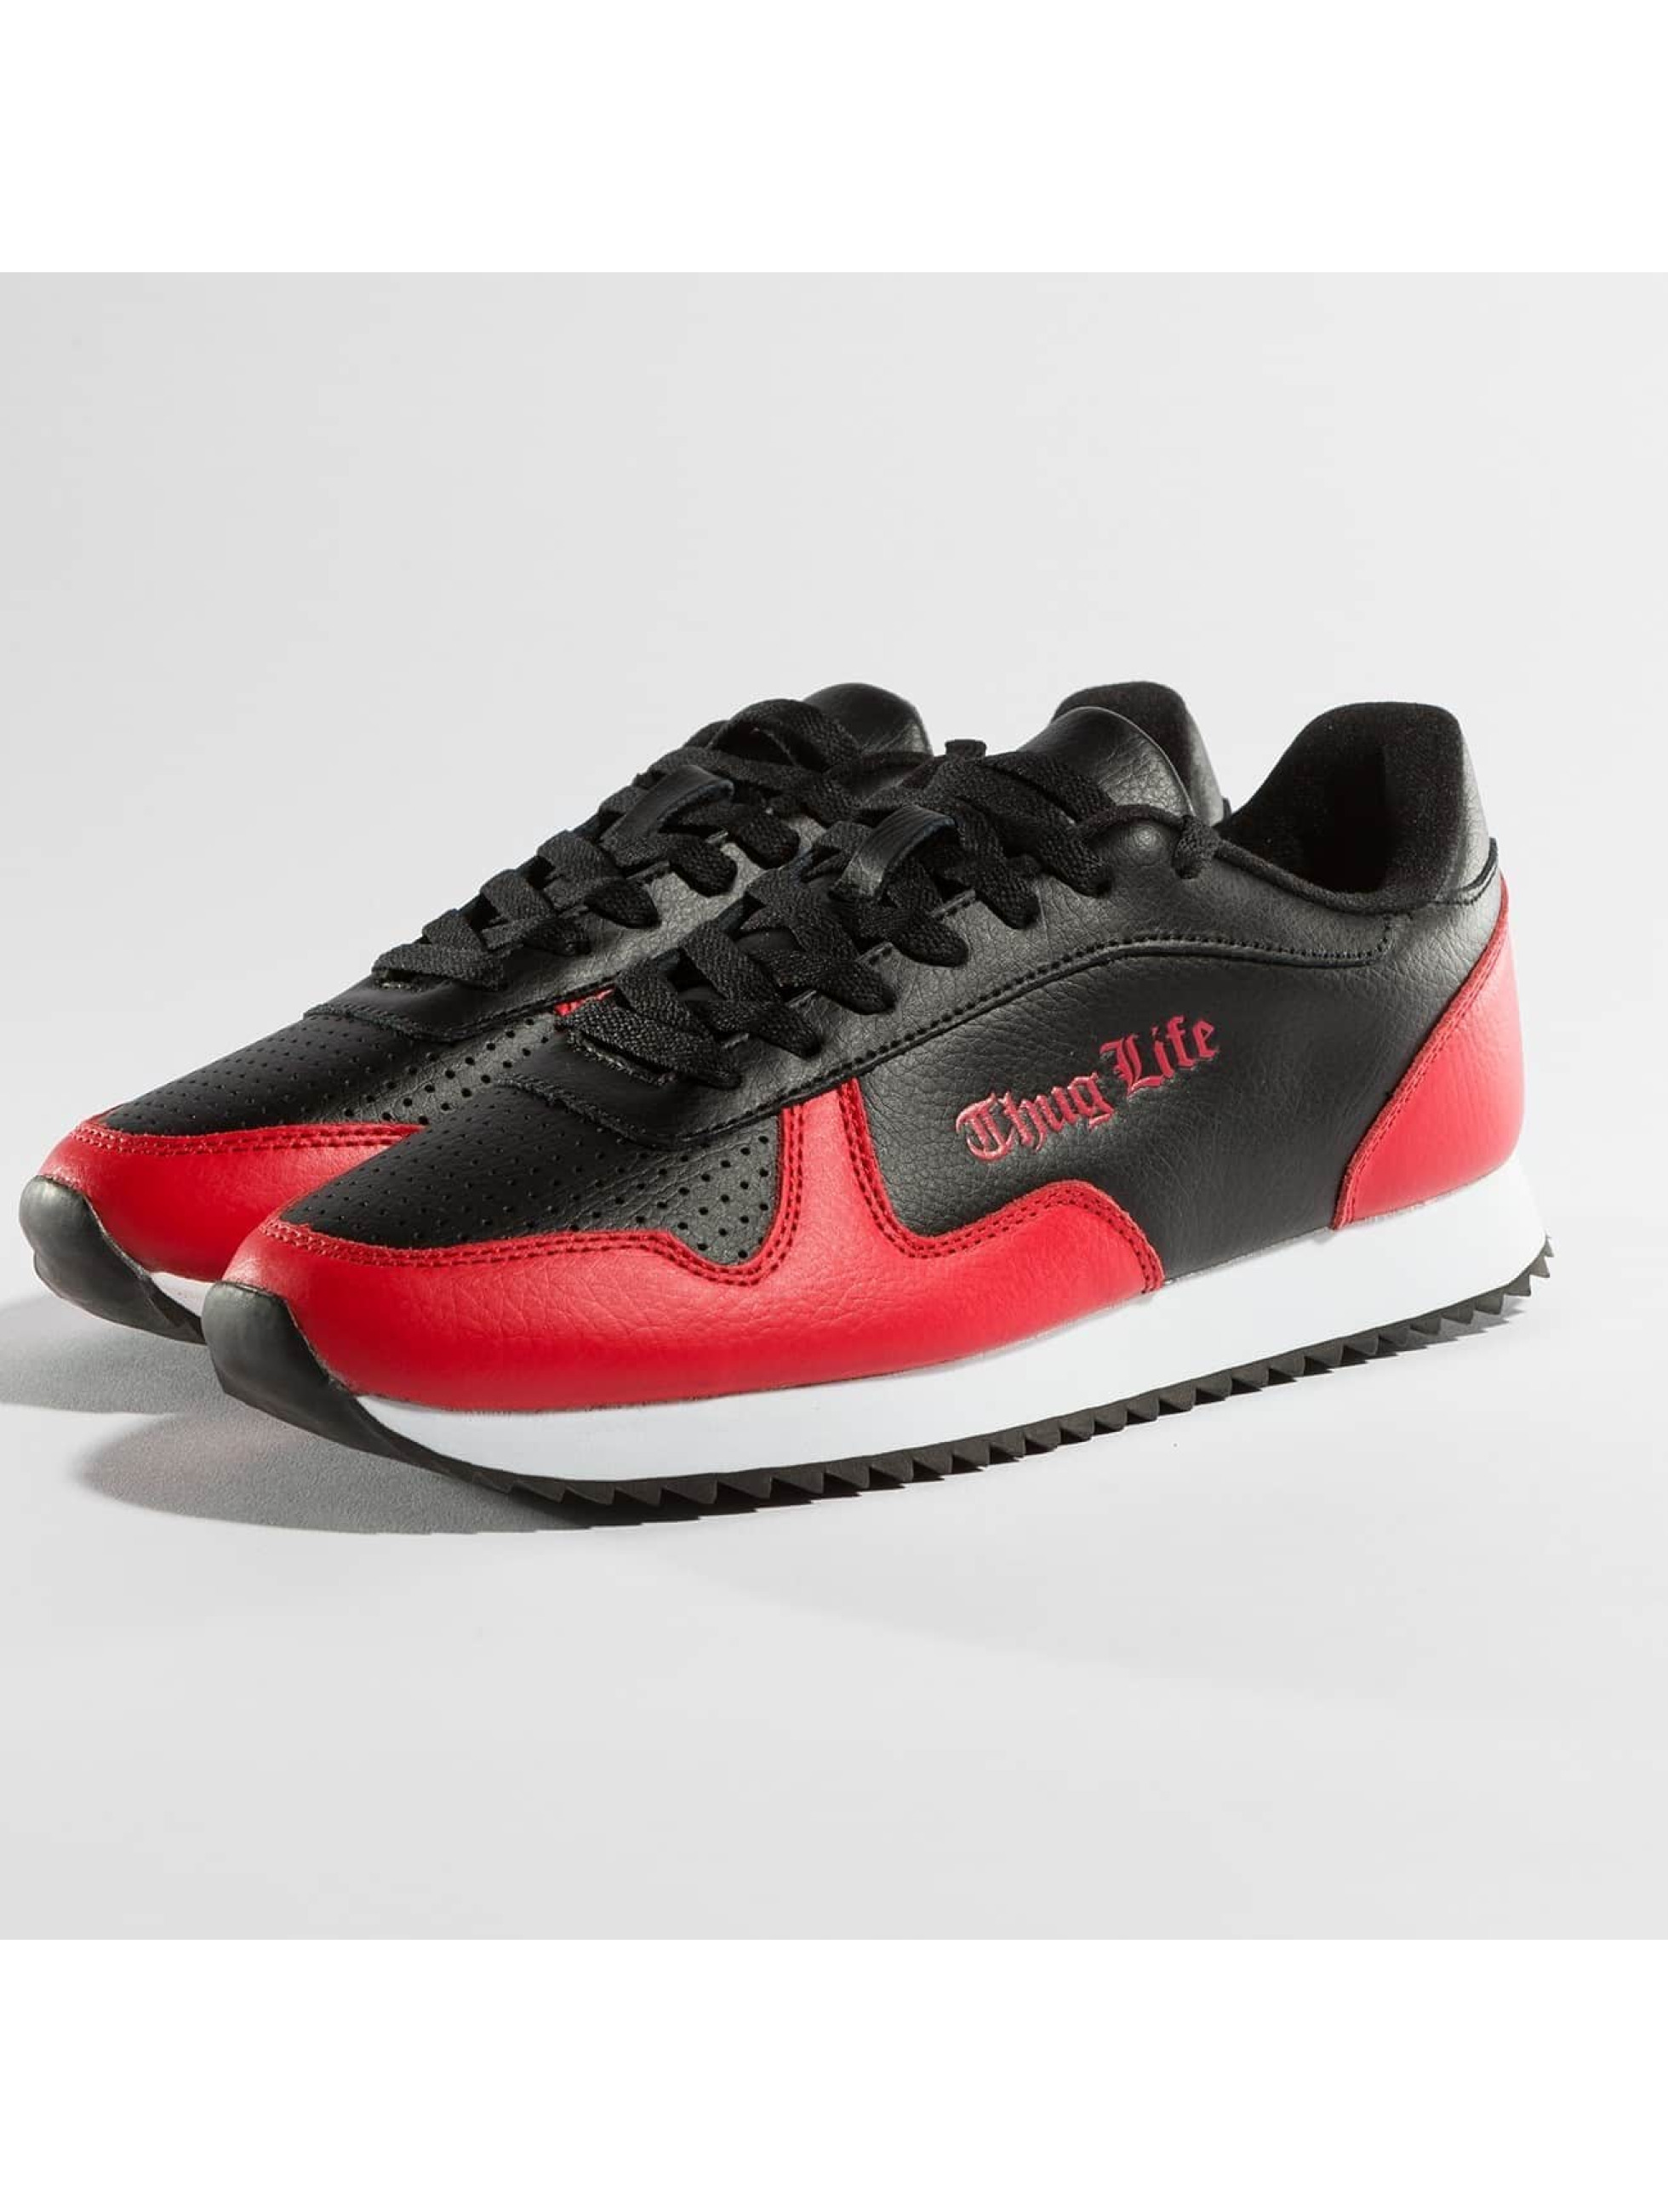 Thug Life / Sneakers 187 in red 42